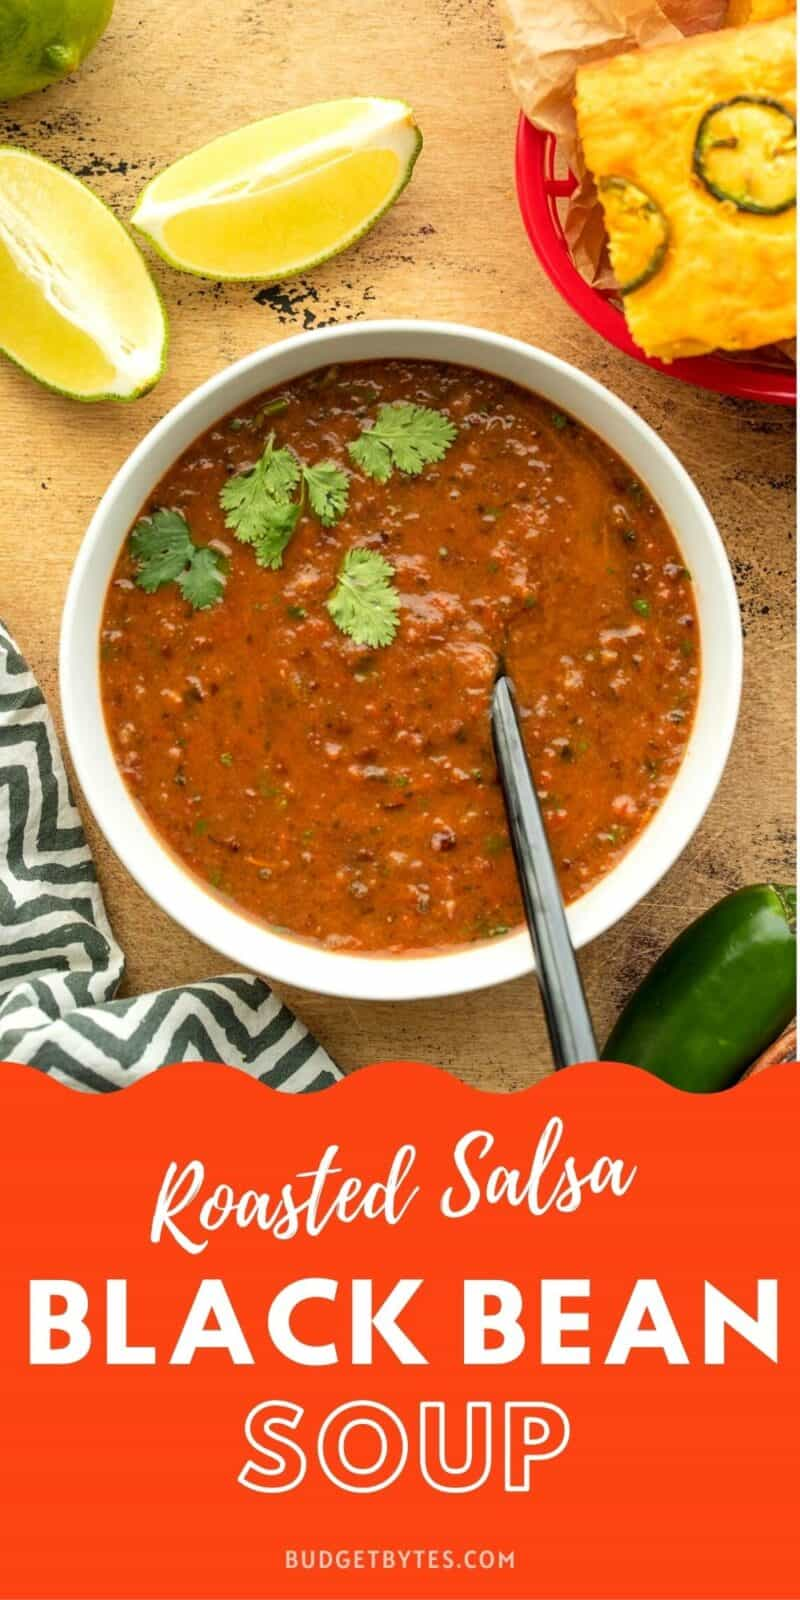 A bowl of Roasted Salsa and Black Bean Soup, title text at the bottom